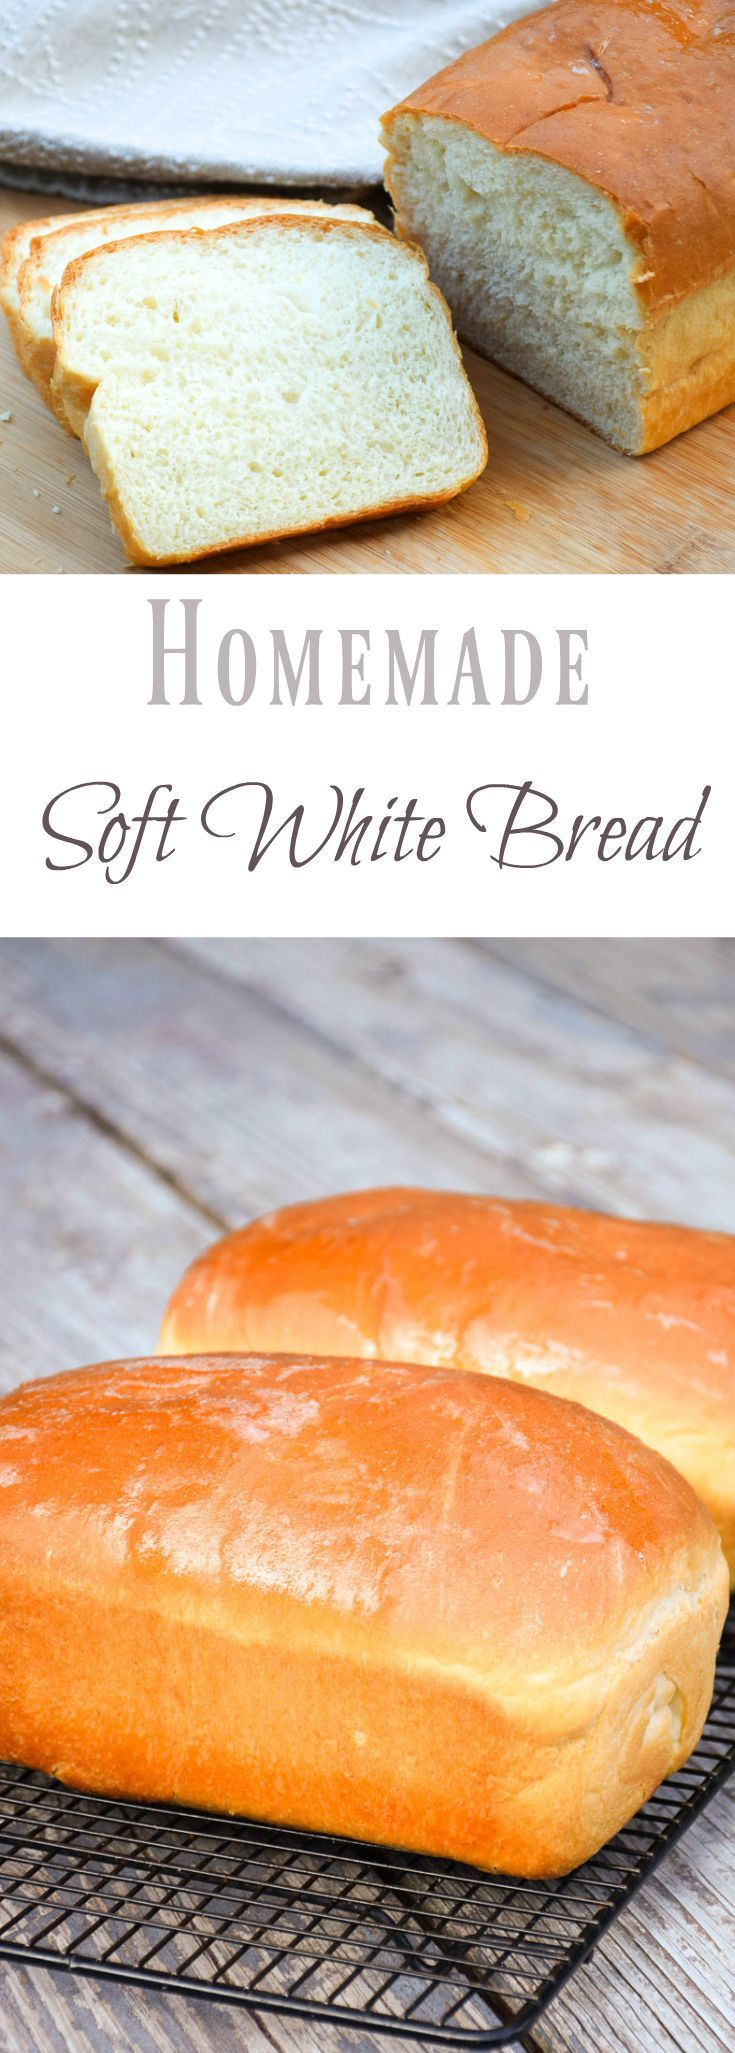 Soft and delicious, this bread homemade loaf of soft white bread will literally melt in your mouth! Top with real butter and jam for a delicious treat!